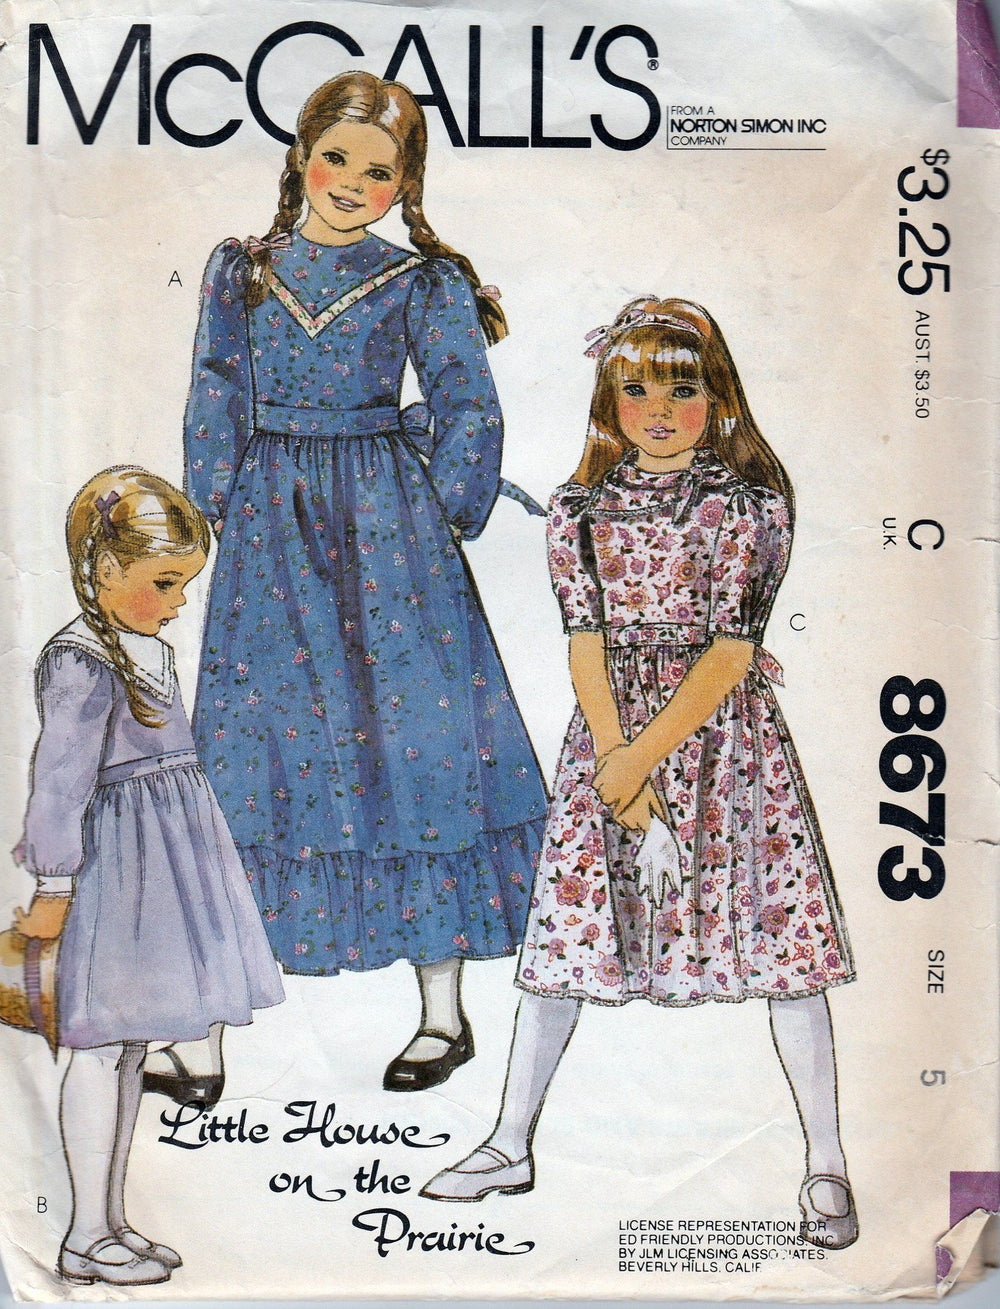 McCall's 8673 Vintage 80's Sewing Pattern Pullover Dress Scarf Little House on the Prairie - VintageStitching - Vintage Sewing Patterns